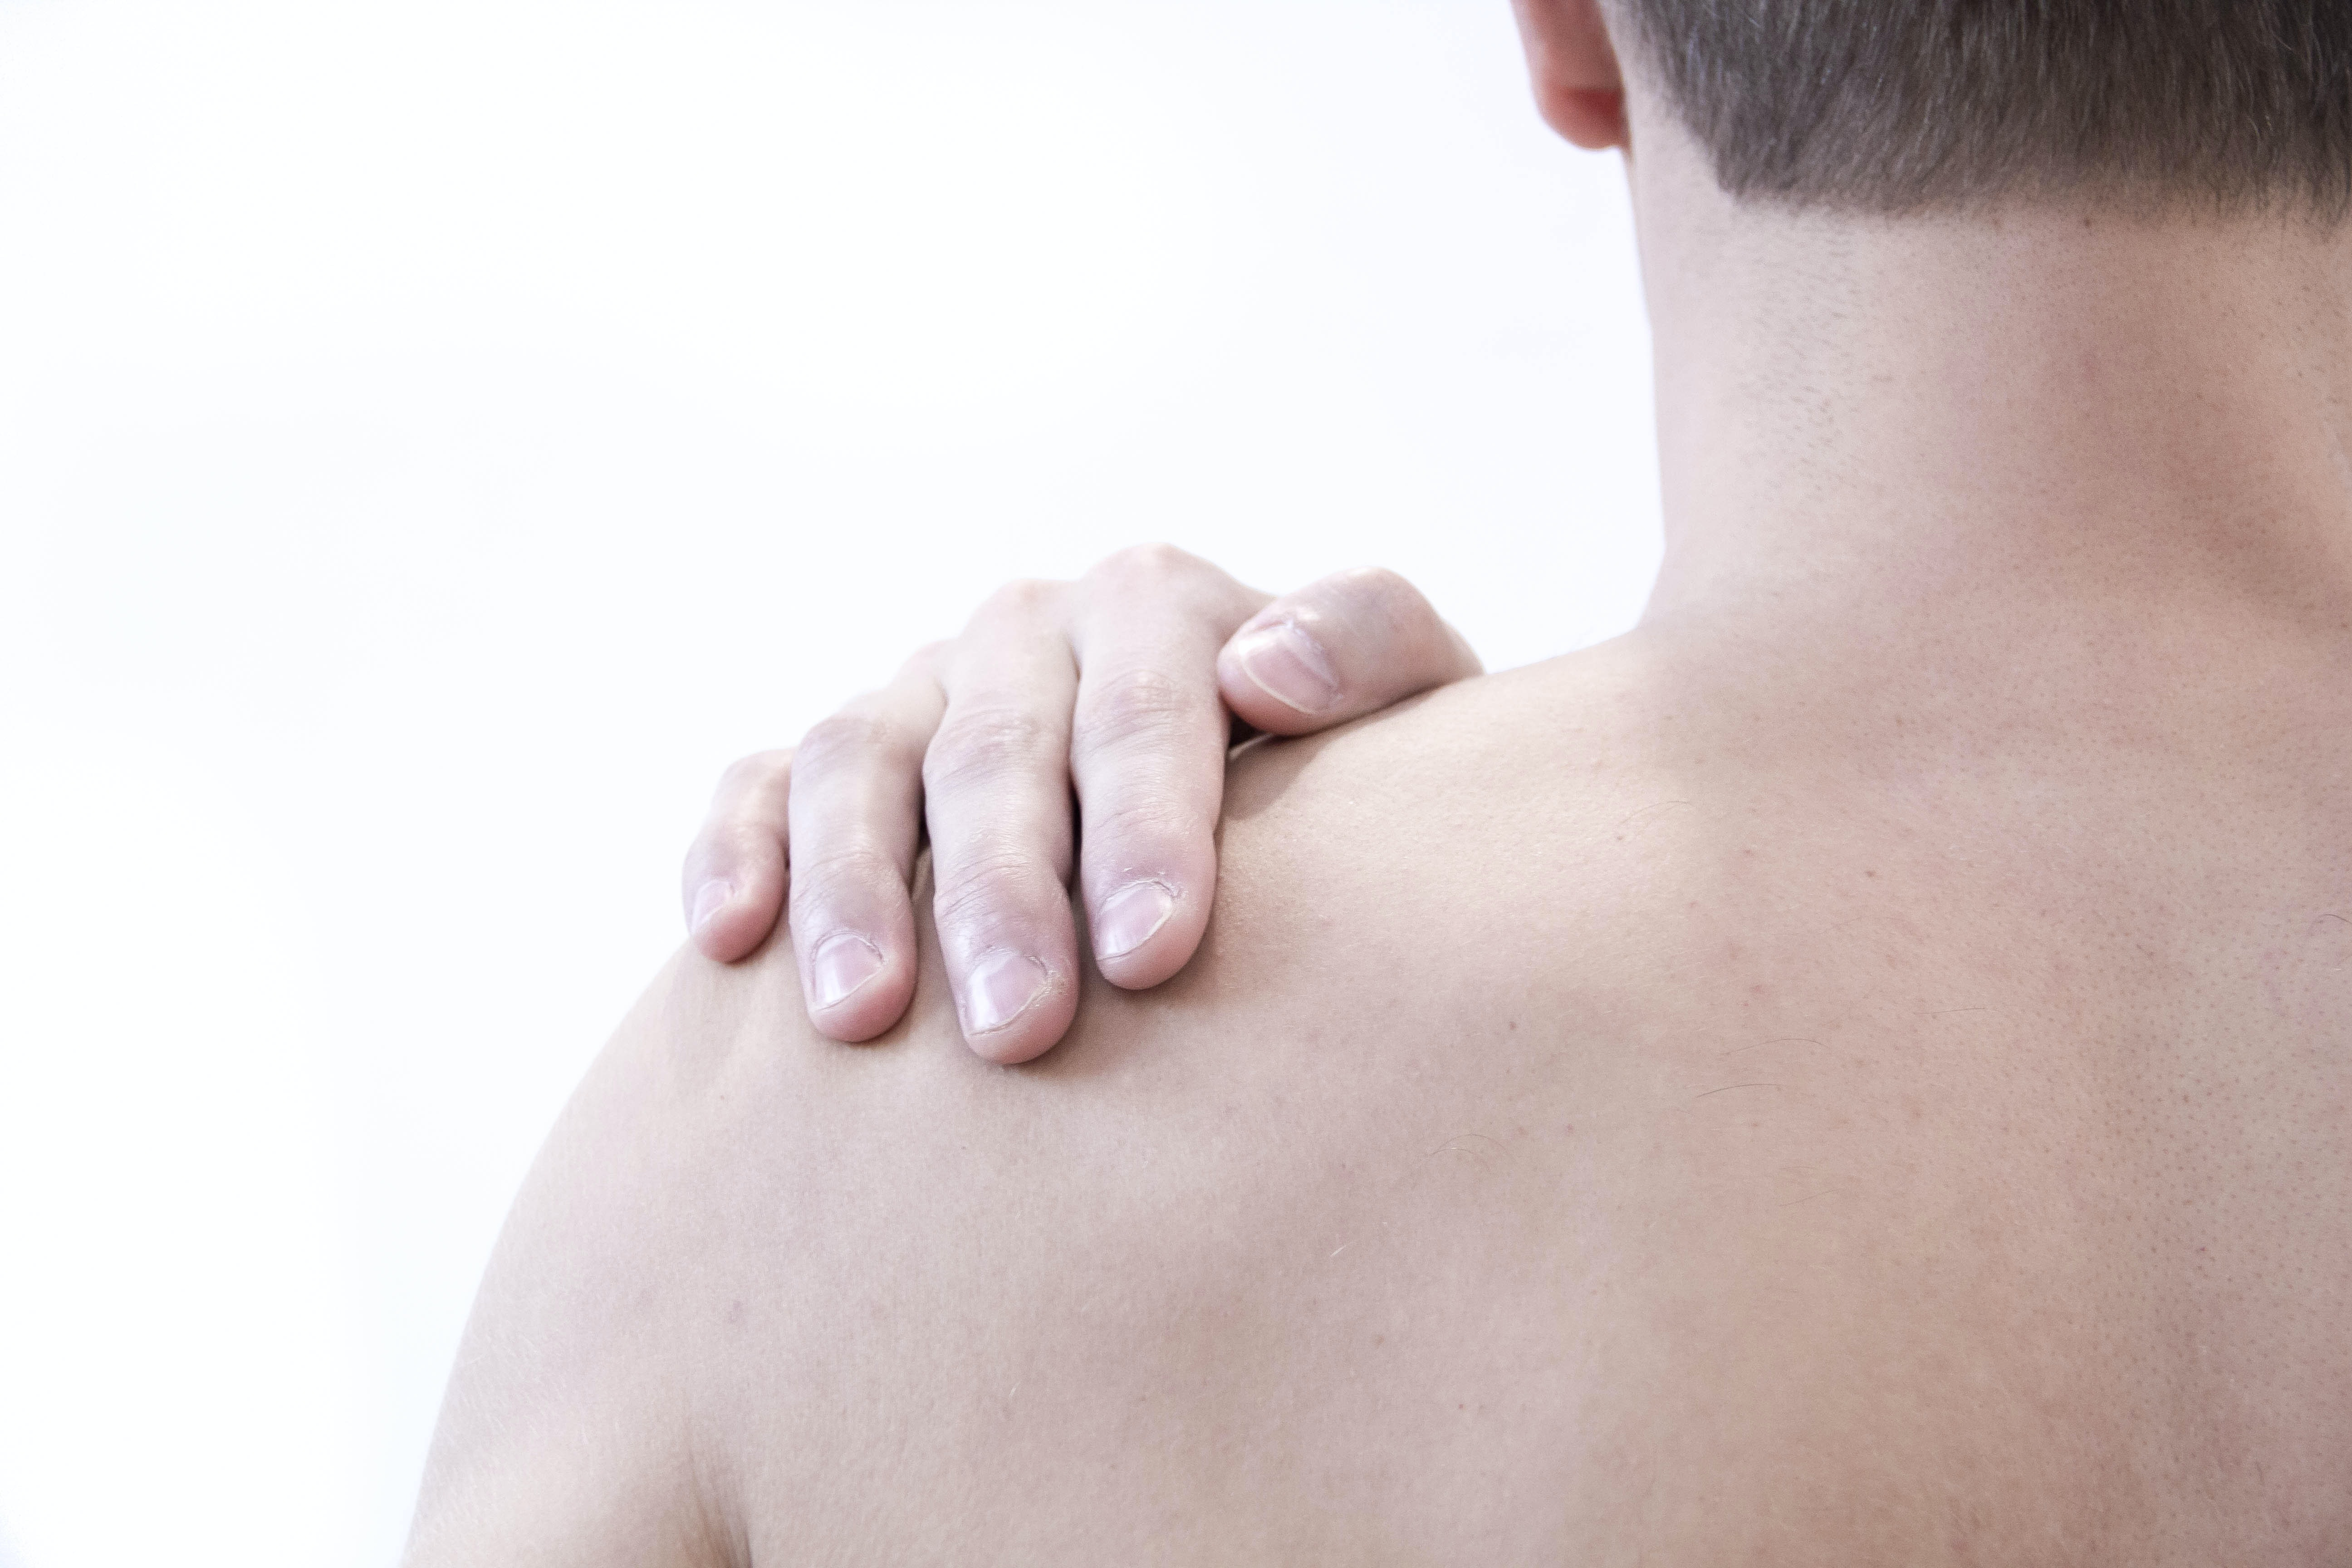 An image depicting a person suffering from shoulder bump symptoms